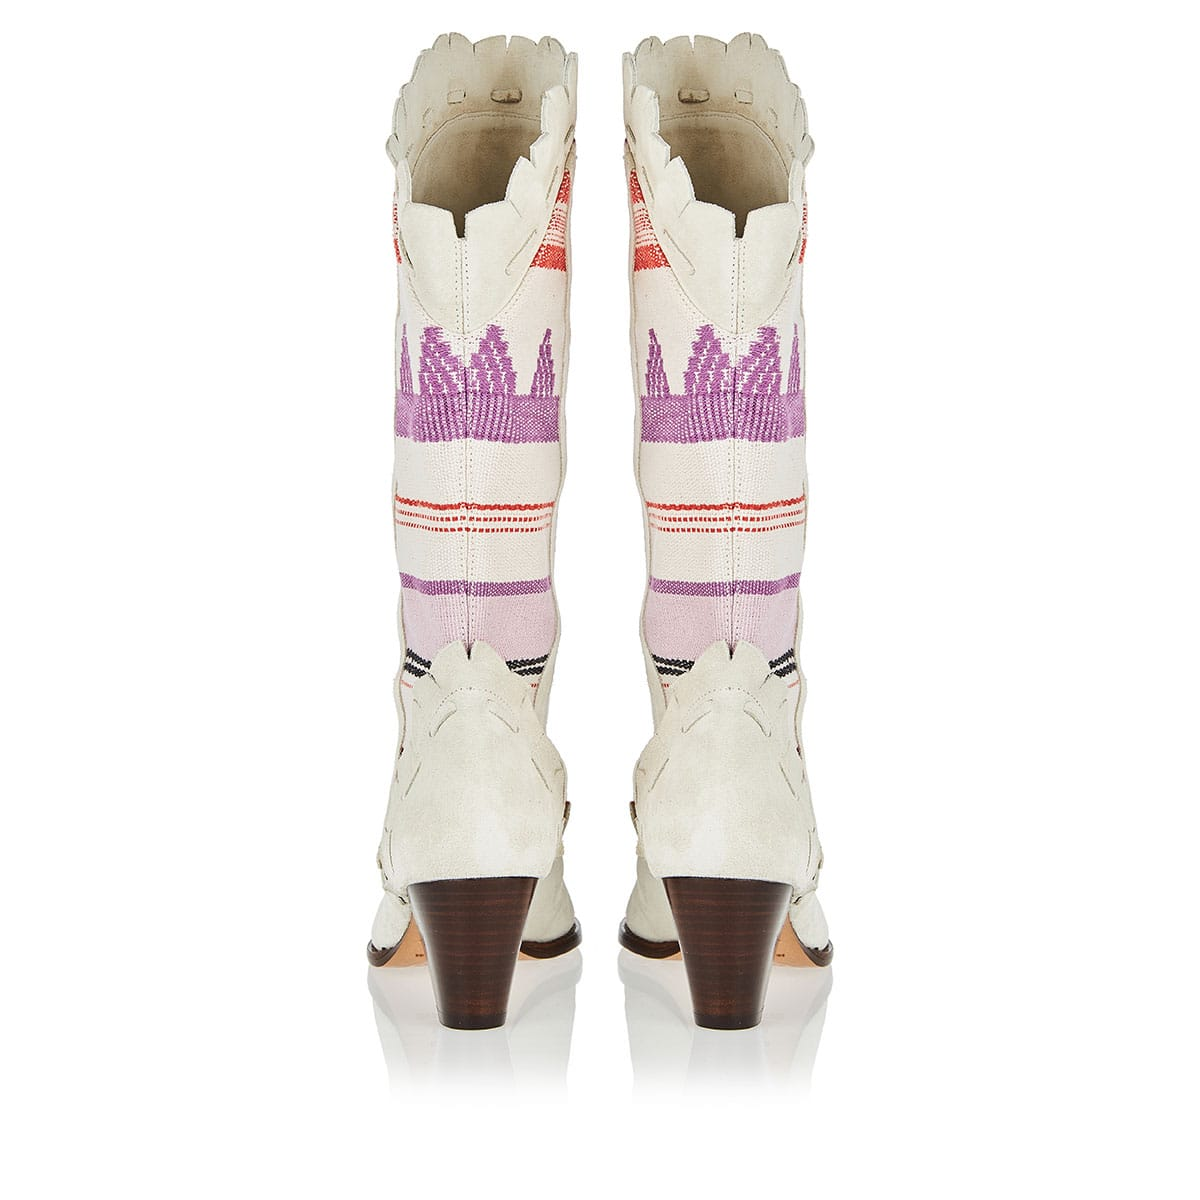 Leesta embroidered suede boots